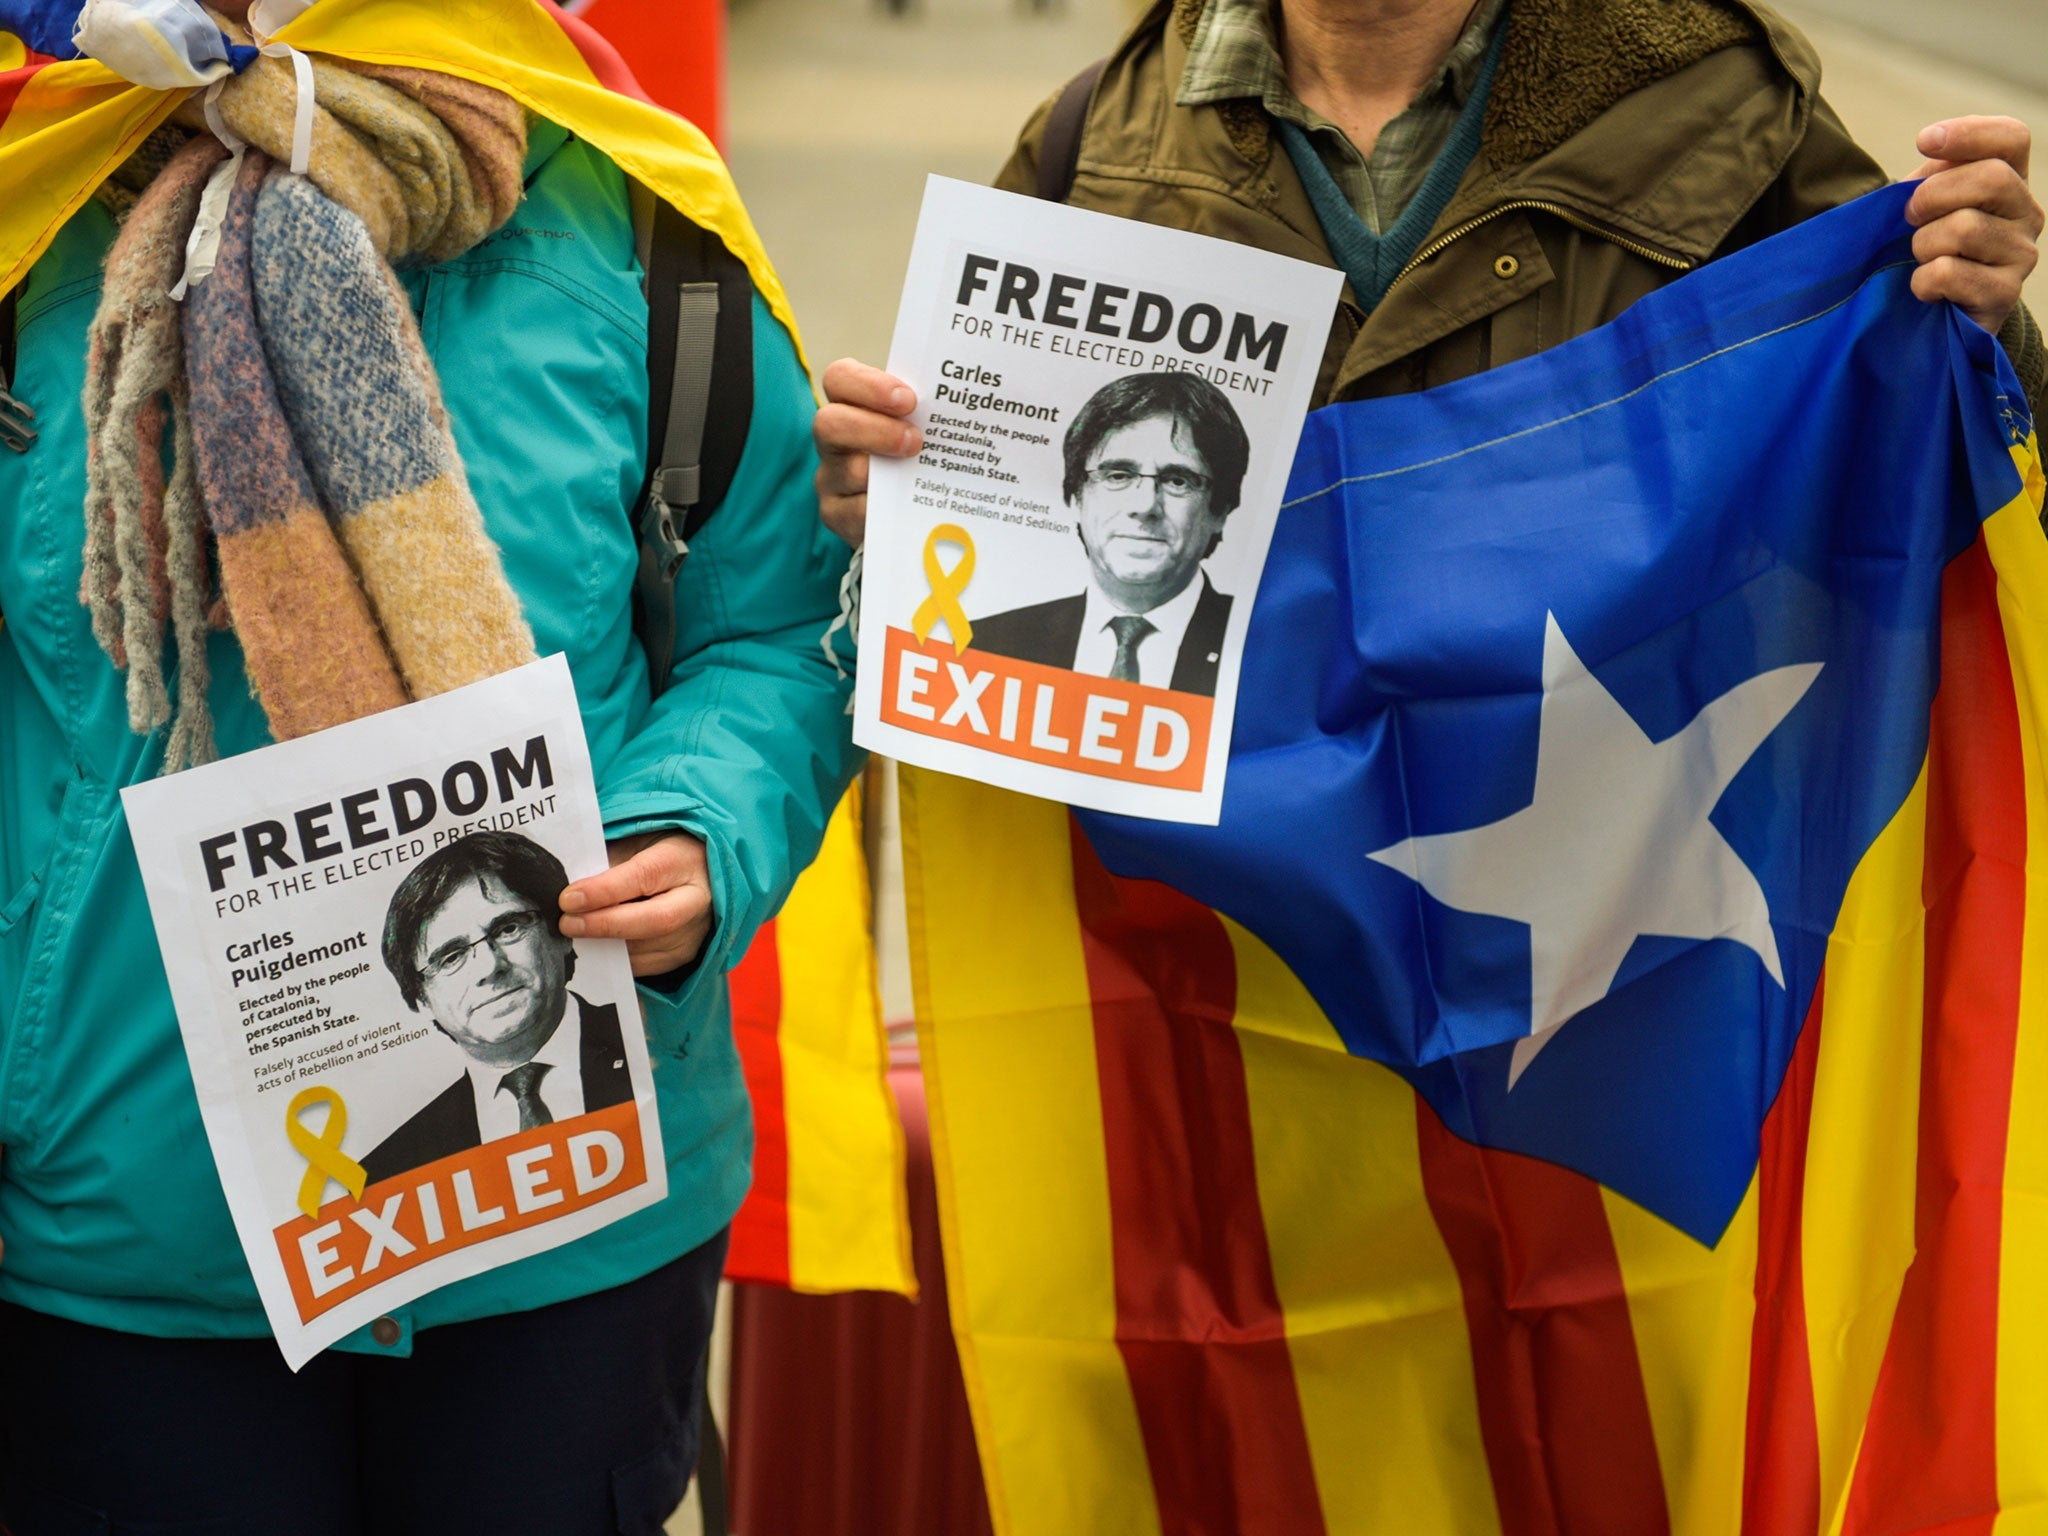 catalan dating culture The guardian - back who executed the leader of a self-declared catalan state and tried to suppress its language and culture dating back to the movida.